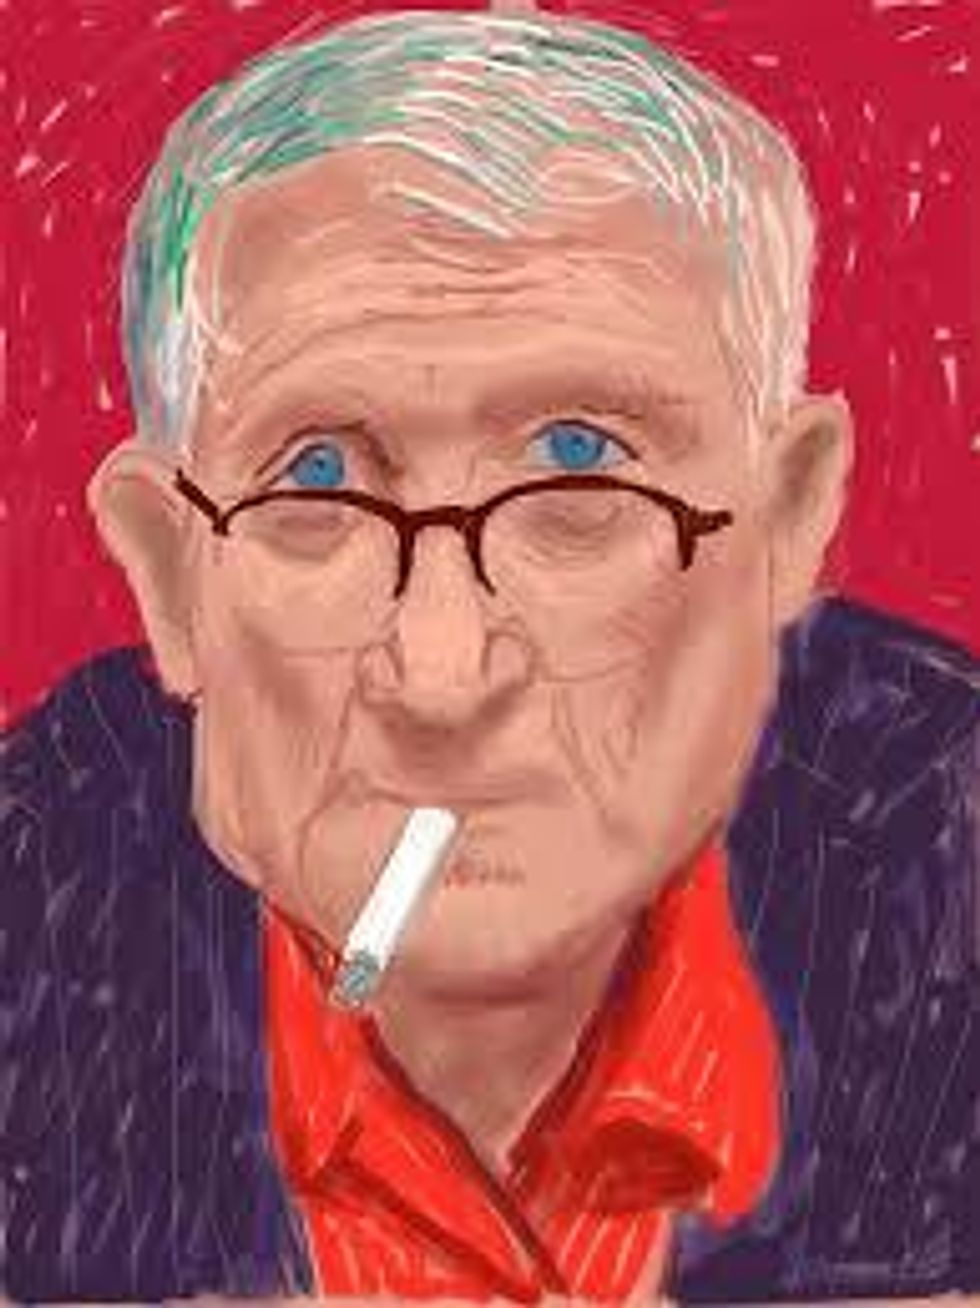 9 Of Hockney's Works That Jumped Out During Finals